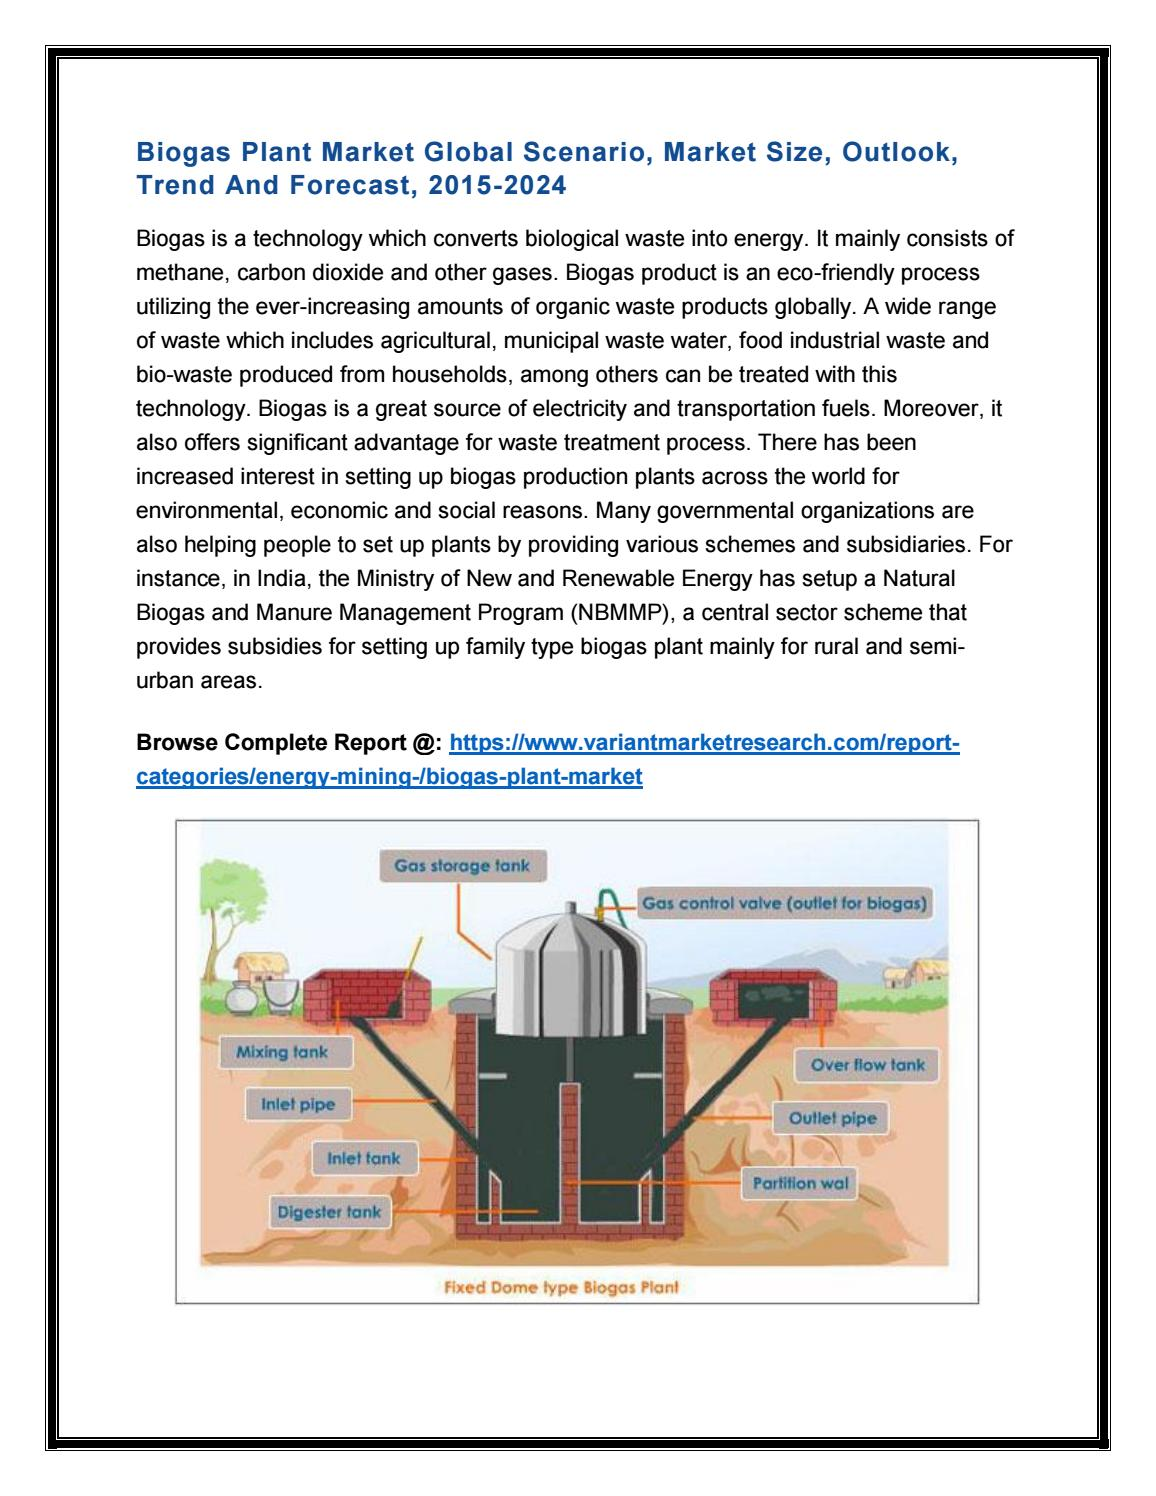 Biogas Plant Market Global Scenario Size Outlook Trend And Large Bio Gas Diagram Forecast 2015 2024 By Variantmarketresearch Issuu